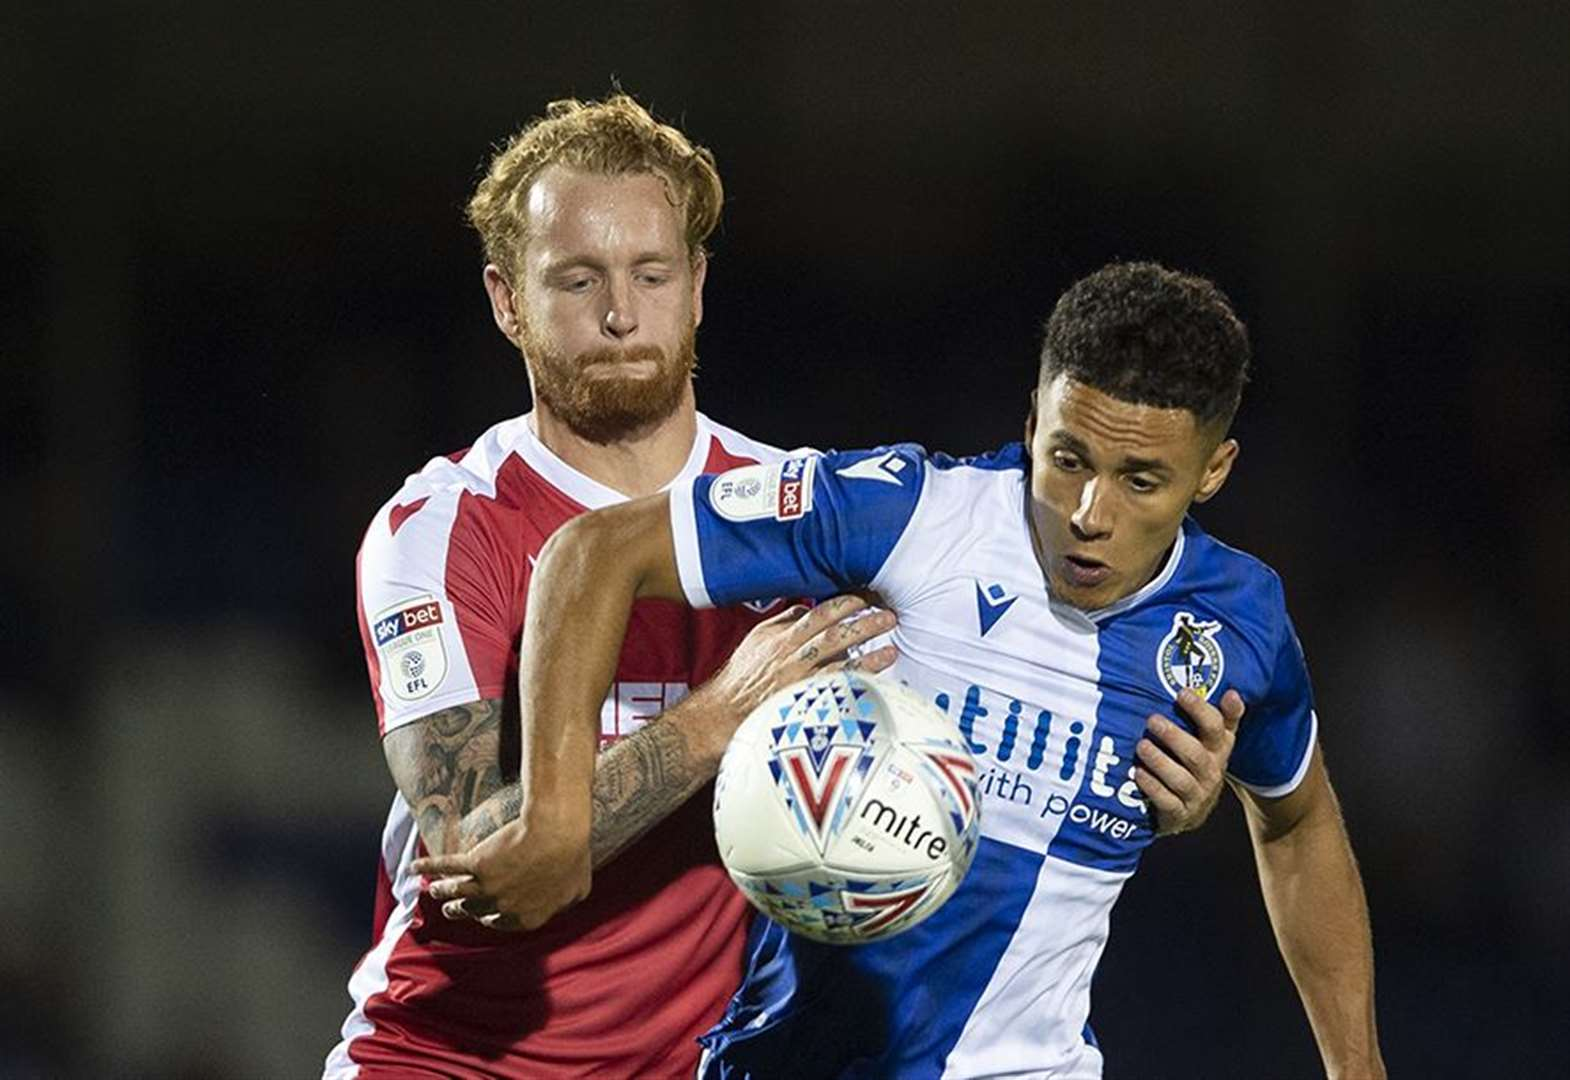 Report: Gills leave it late